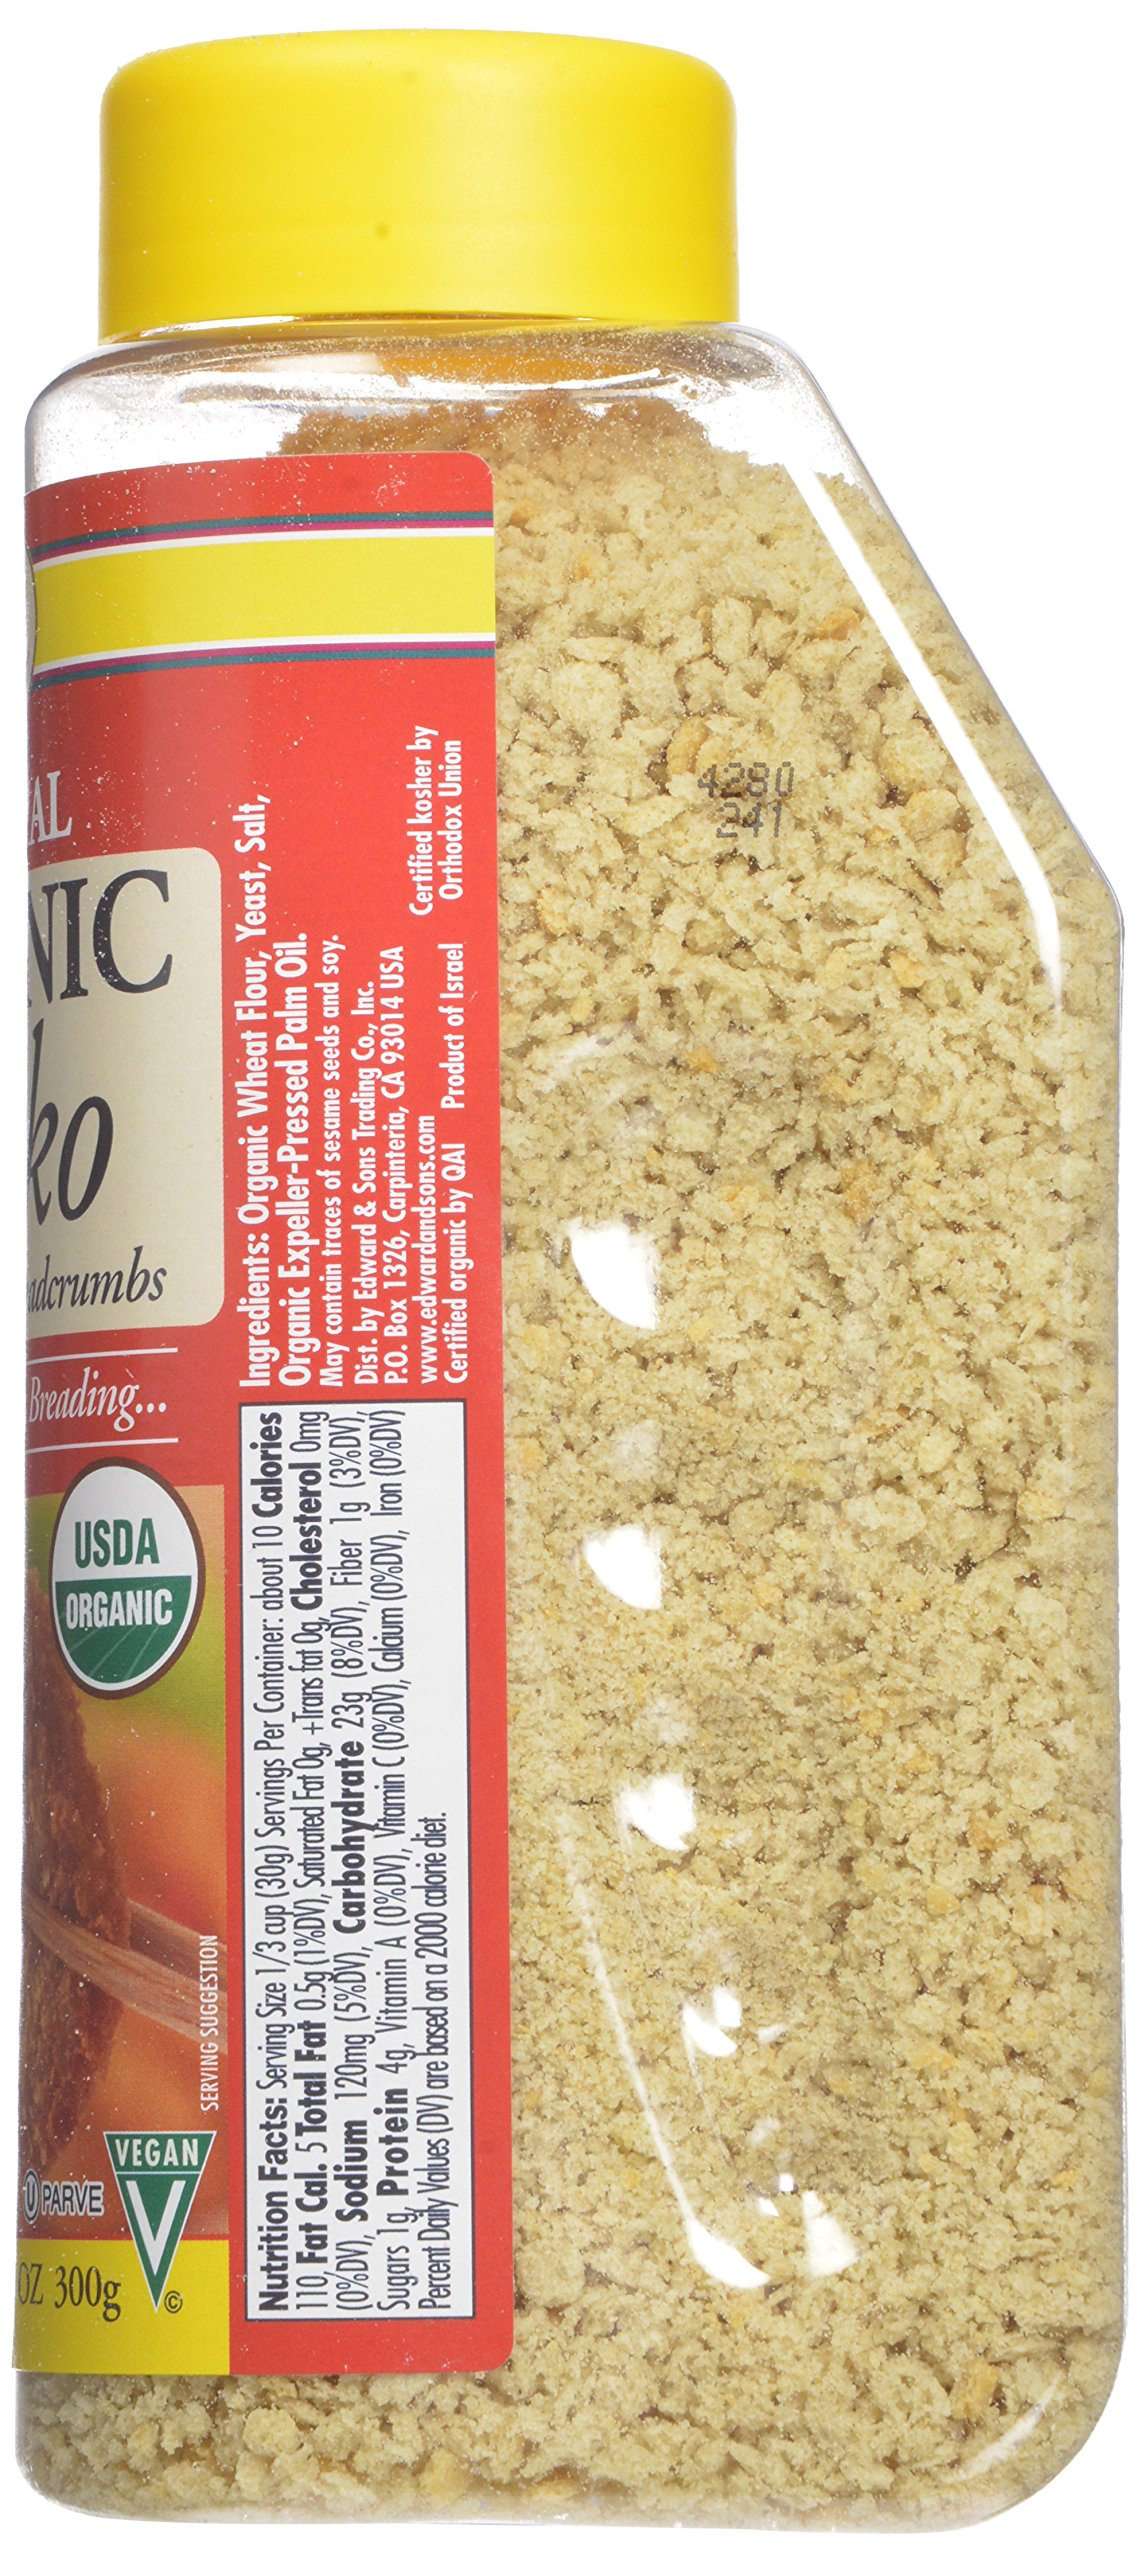 Edward & Sons Organic Panko, Japanese Style Breadcrumbs, 10.5-Ounce Canisters (Pack of 6) by Edward & Sons (Image #4)